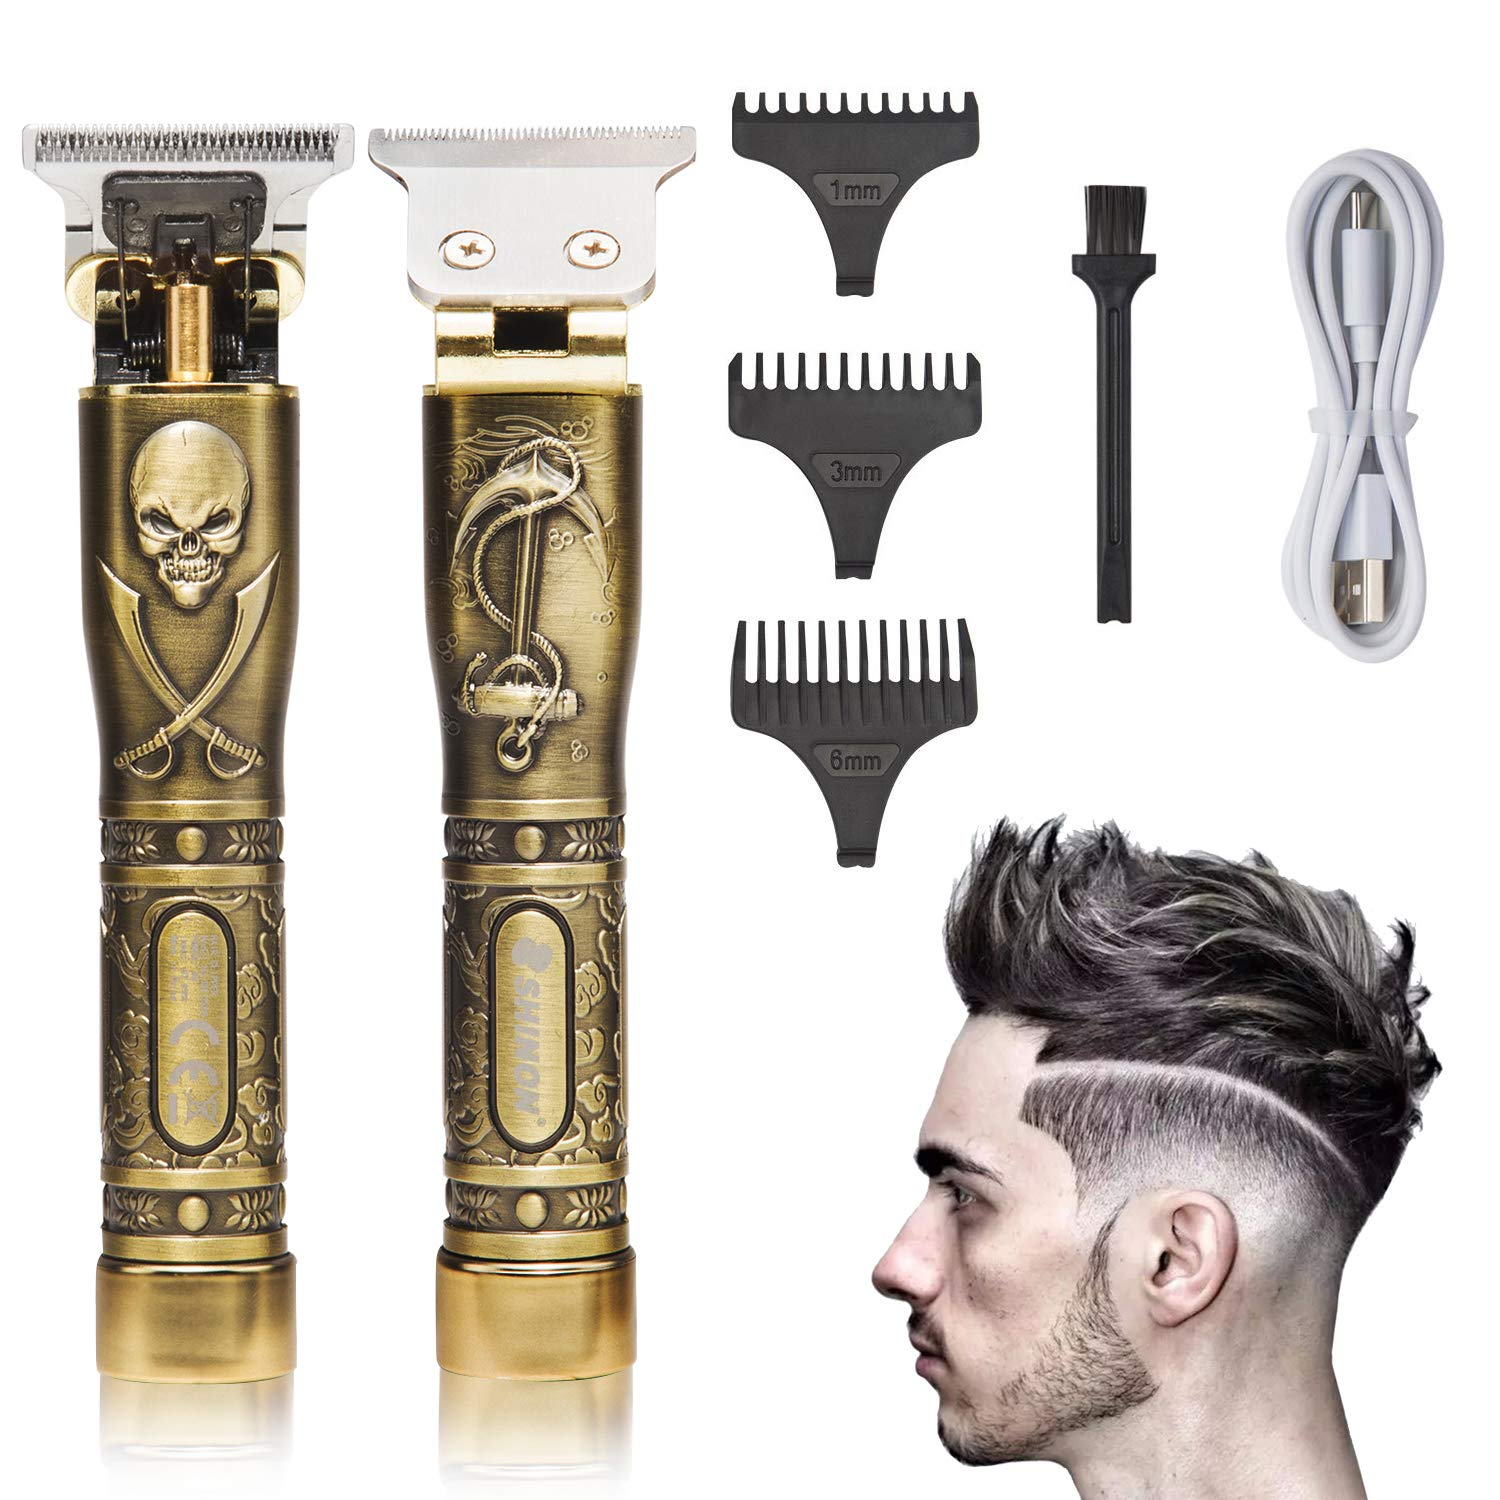 ToHLo Mens Hair Clipper Cordless Hair Trimmer Mens Professional Hair Mustache Trimmer T-Blade Hair Trimmer Grooming Kit Golden skeleton Hair Trimmer with 3 Guide Combs Rechargeable Quiet